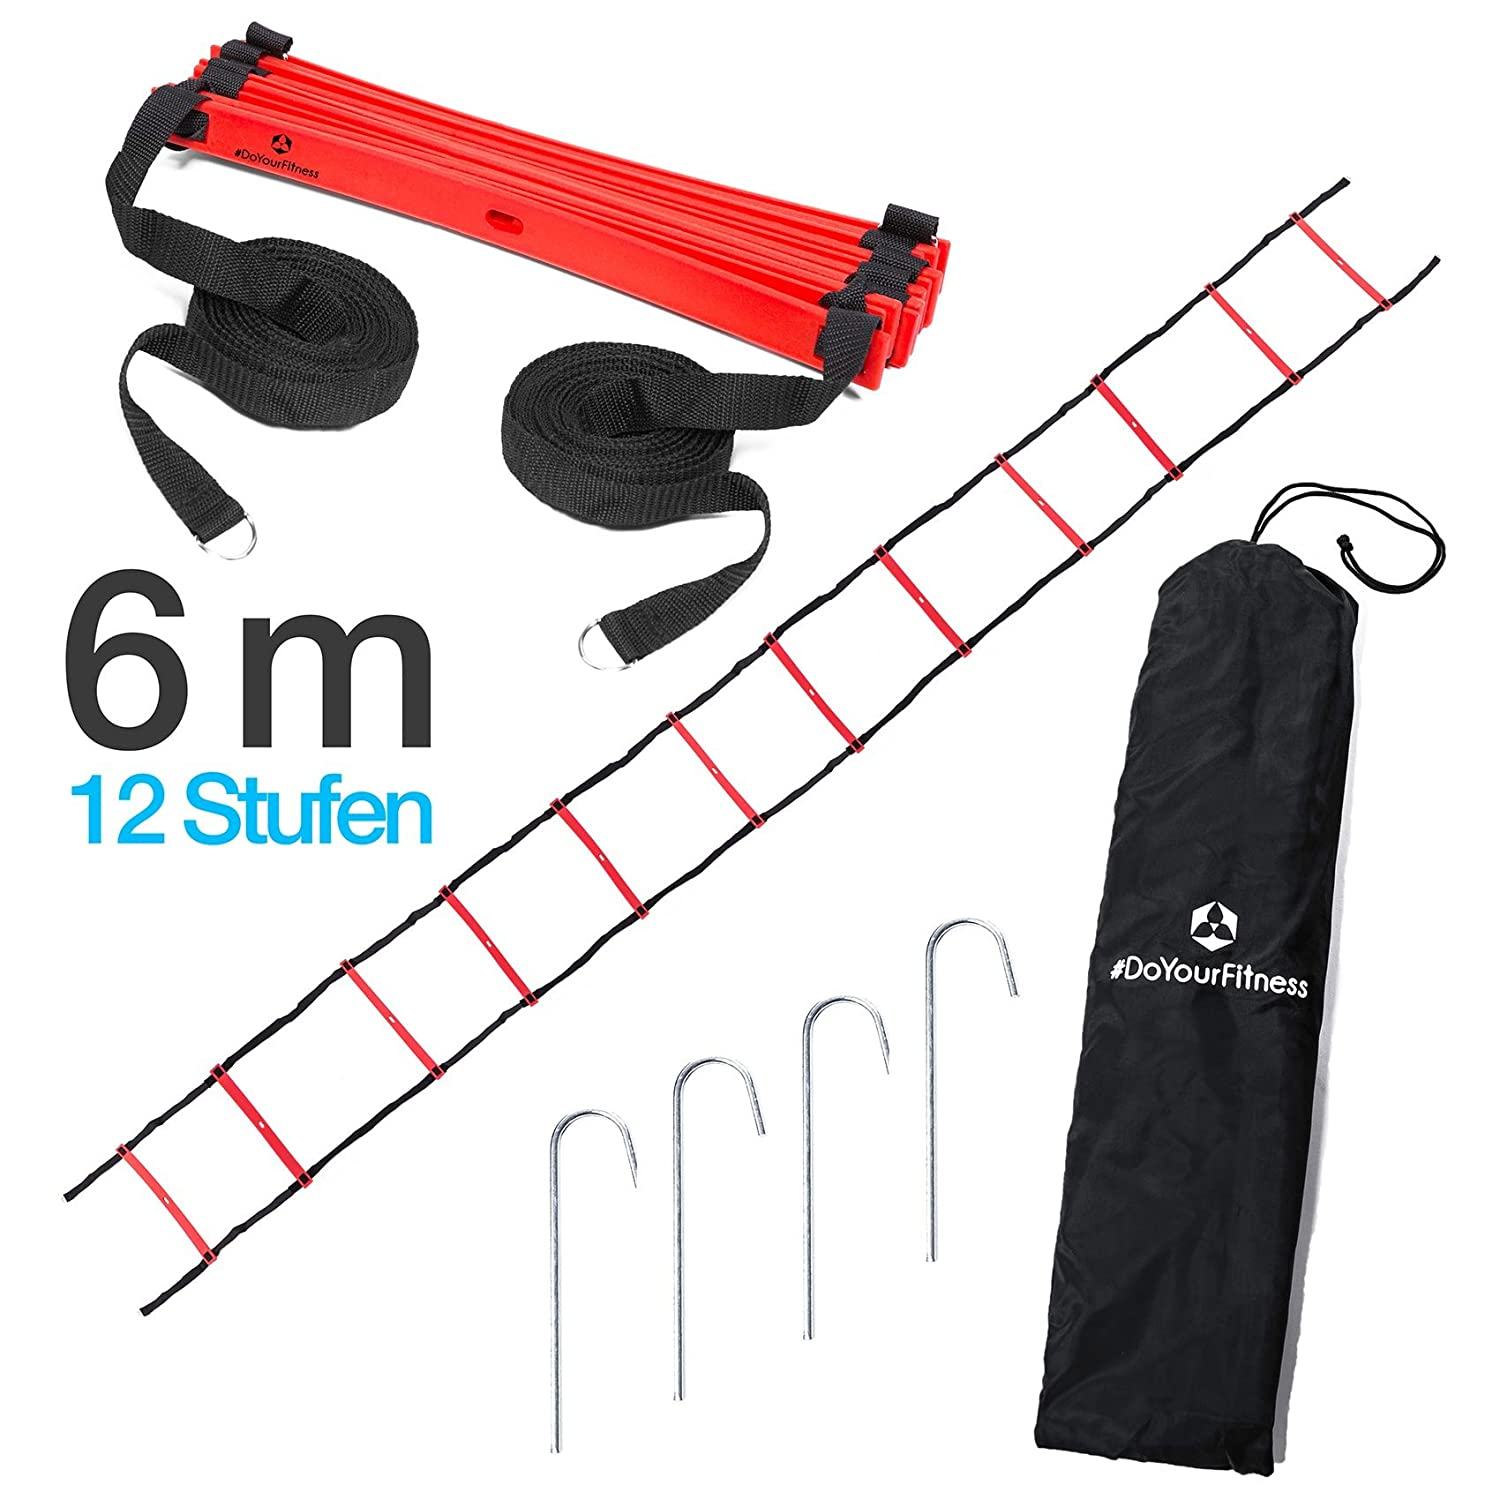 #DoYourFitness Fitness Speed Training Agility Ladder Ladder Agility Ladder – 4 6 m 8 M Long – Training Ladder (Engl.) and Conditioning for Agility/Speed Training #DoYourSports